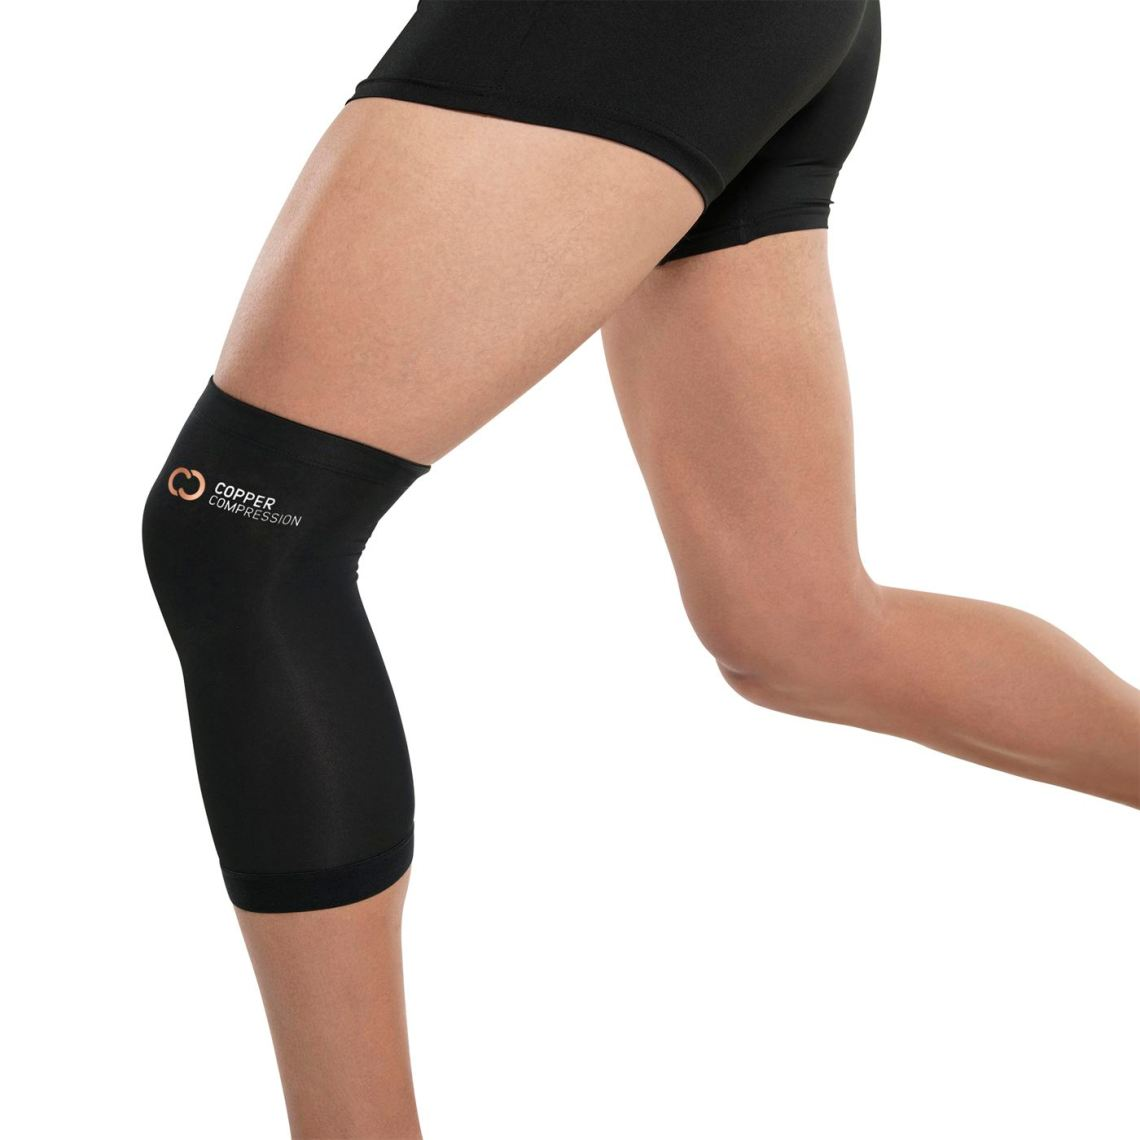 Recovery Knee Sleeve_Copper Compression